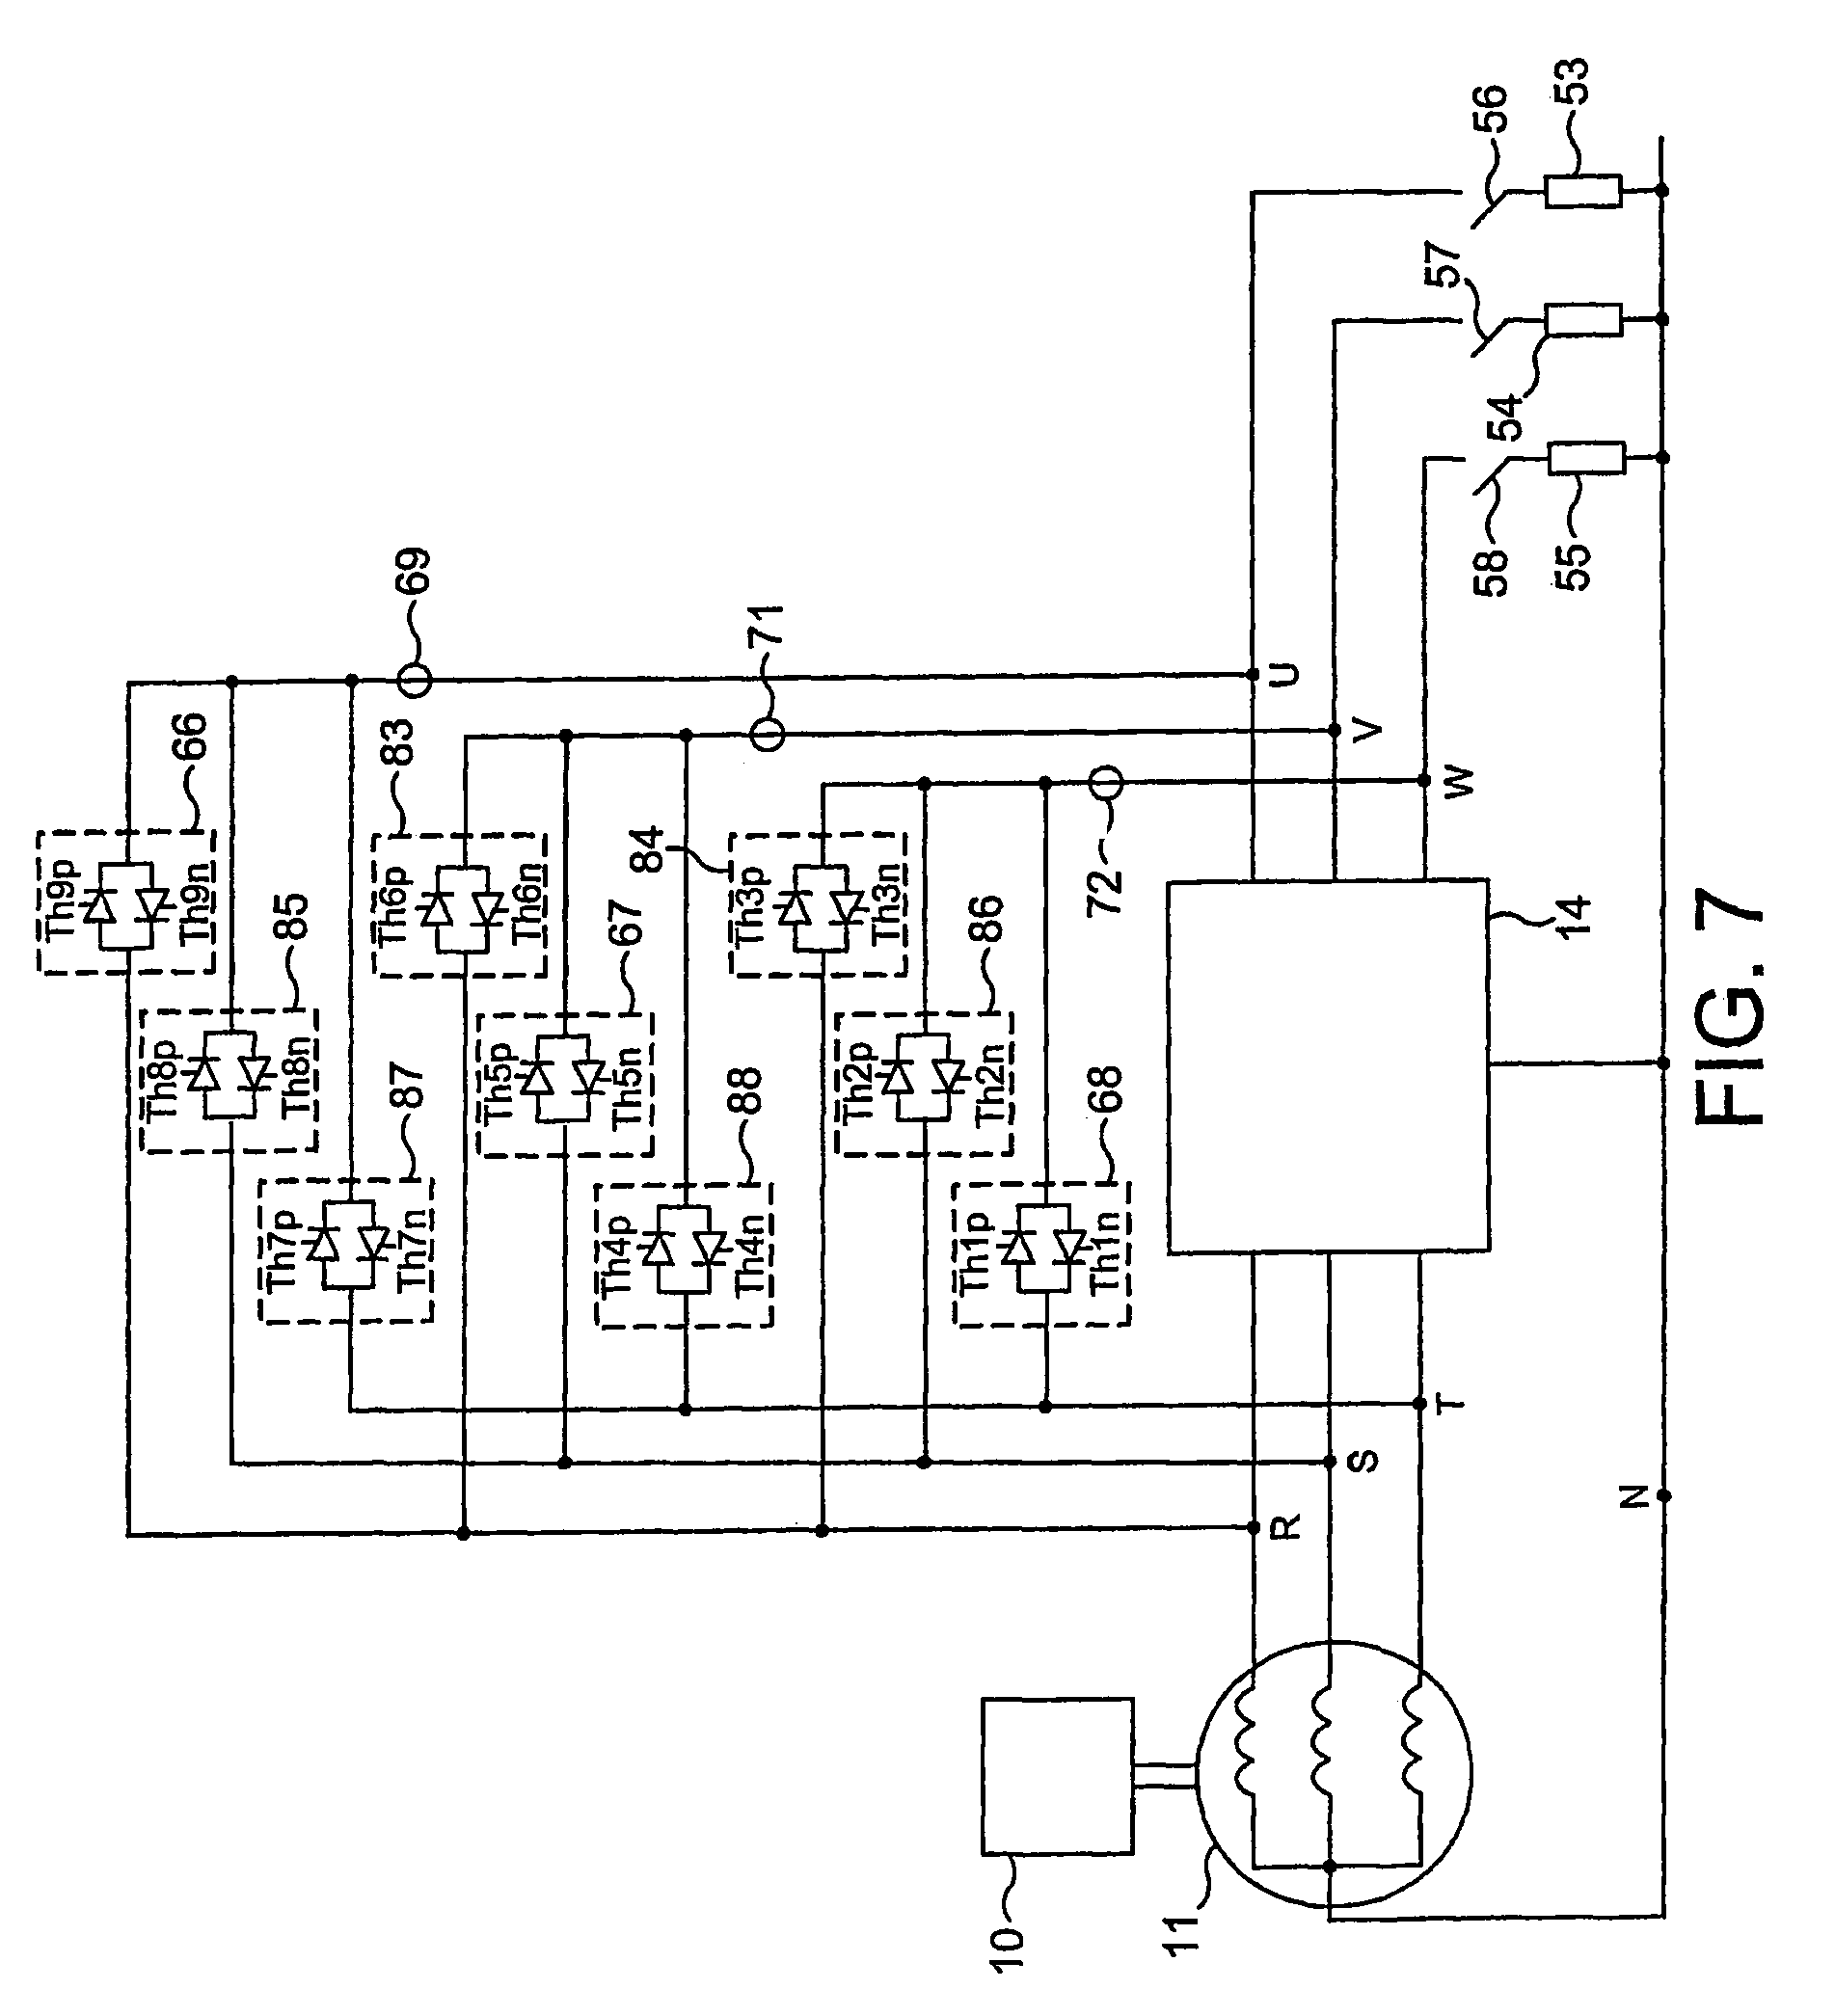 Patent Us7274547 Electrical Power Supply System And A Permanent Line Connected Motor Wiring Diagram With Bypass External Overload Drawing